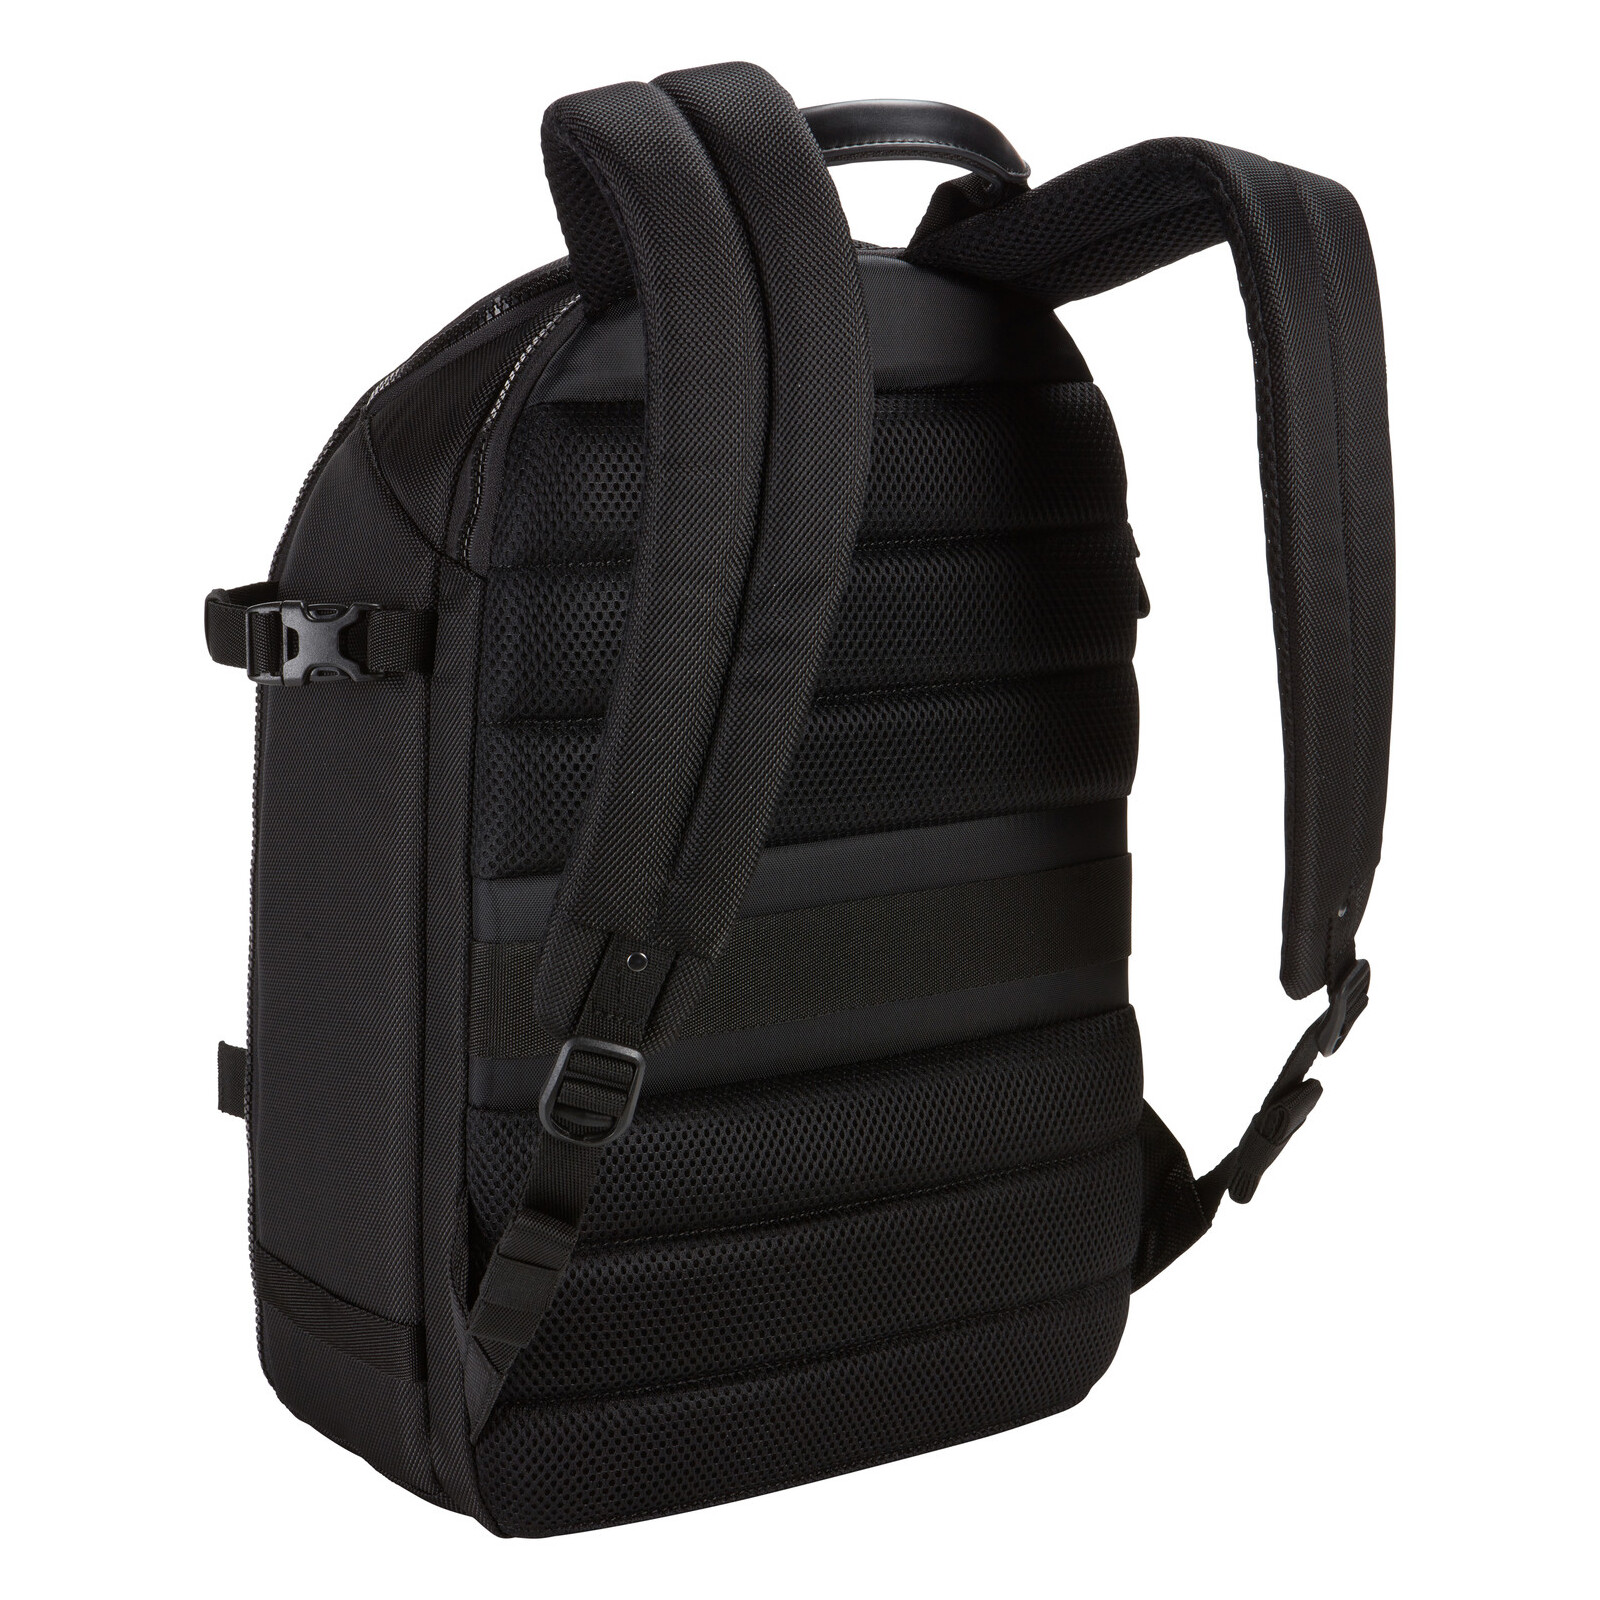 CaseLogic Bryker Backpack DSLR Large